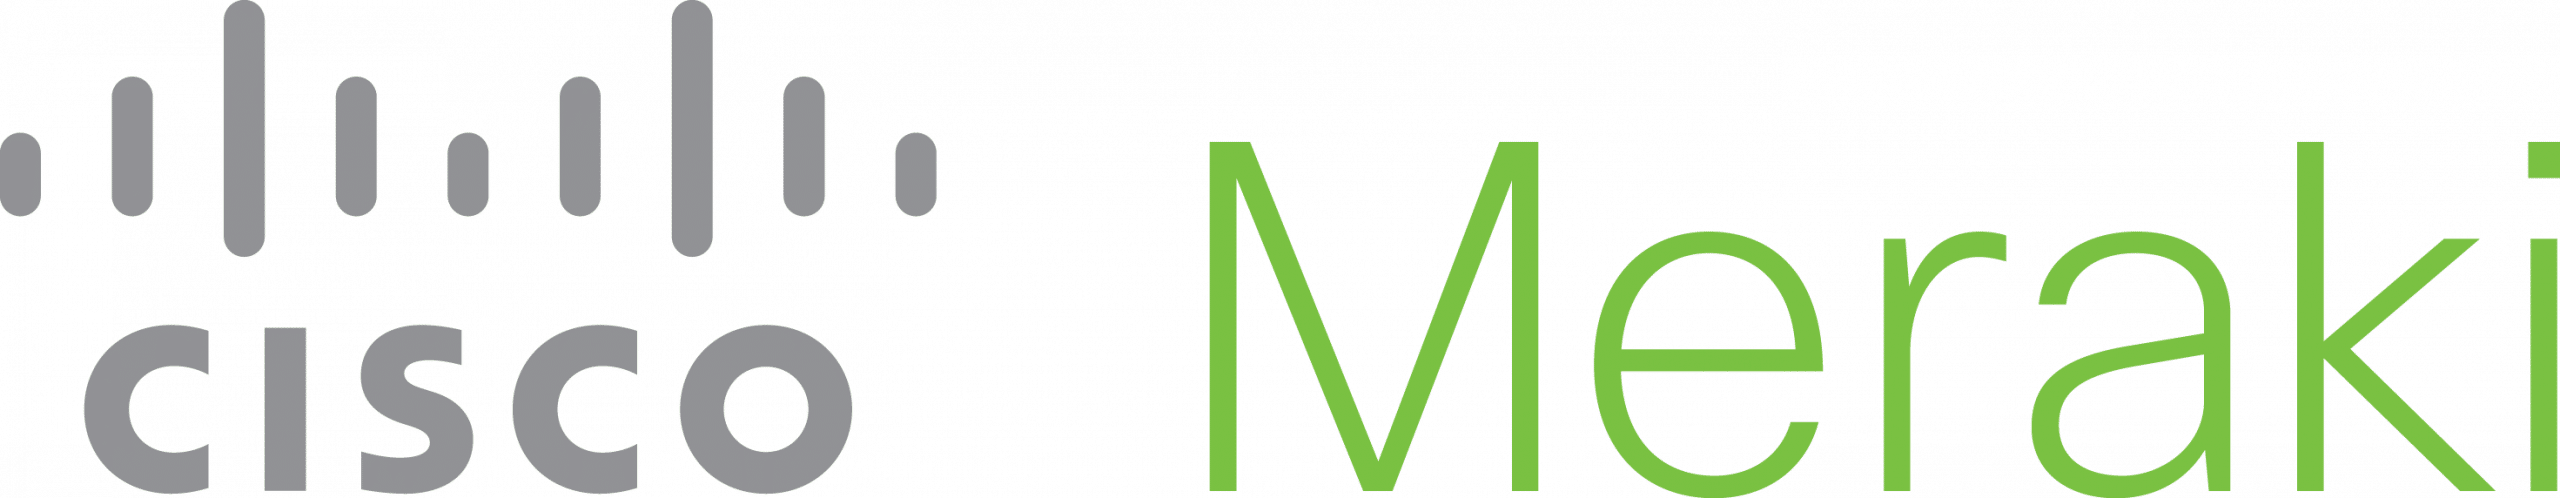 cisco-meraki-logo (1)